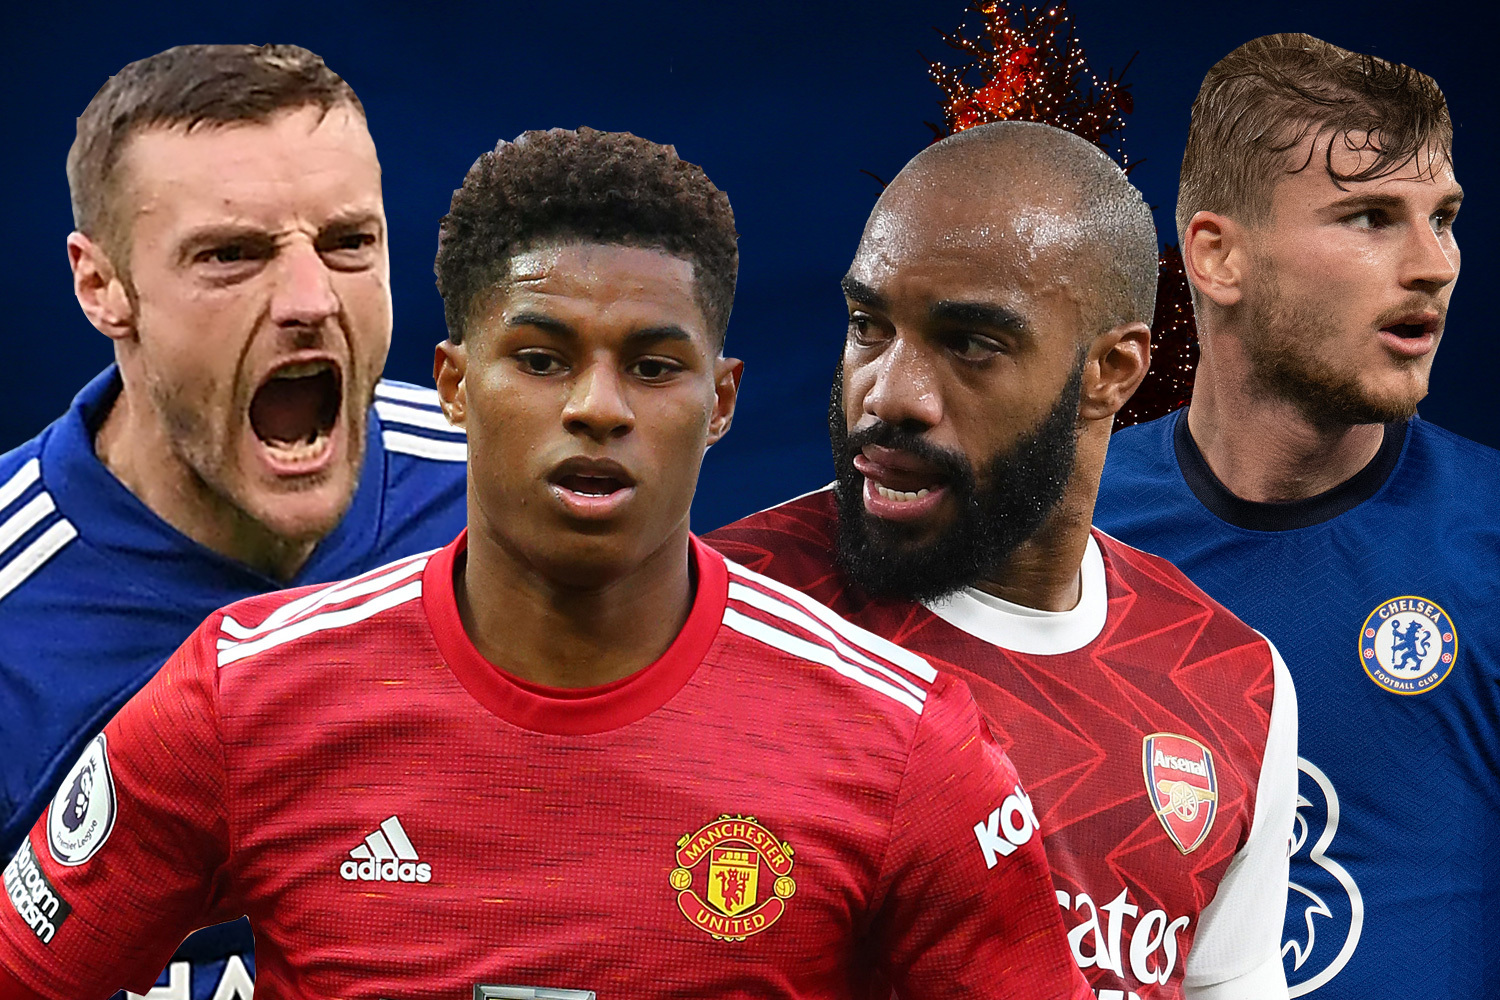 Salah transfer rumours, plus Arsenal vs Chelsea and Man United could catch Liverpool with win at Leicester in Boxing Day fixtures, while Man City hampered by COVID